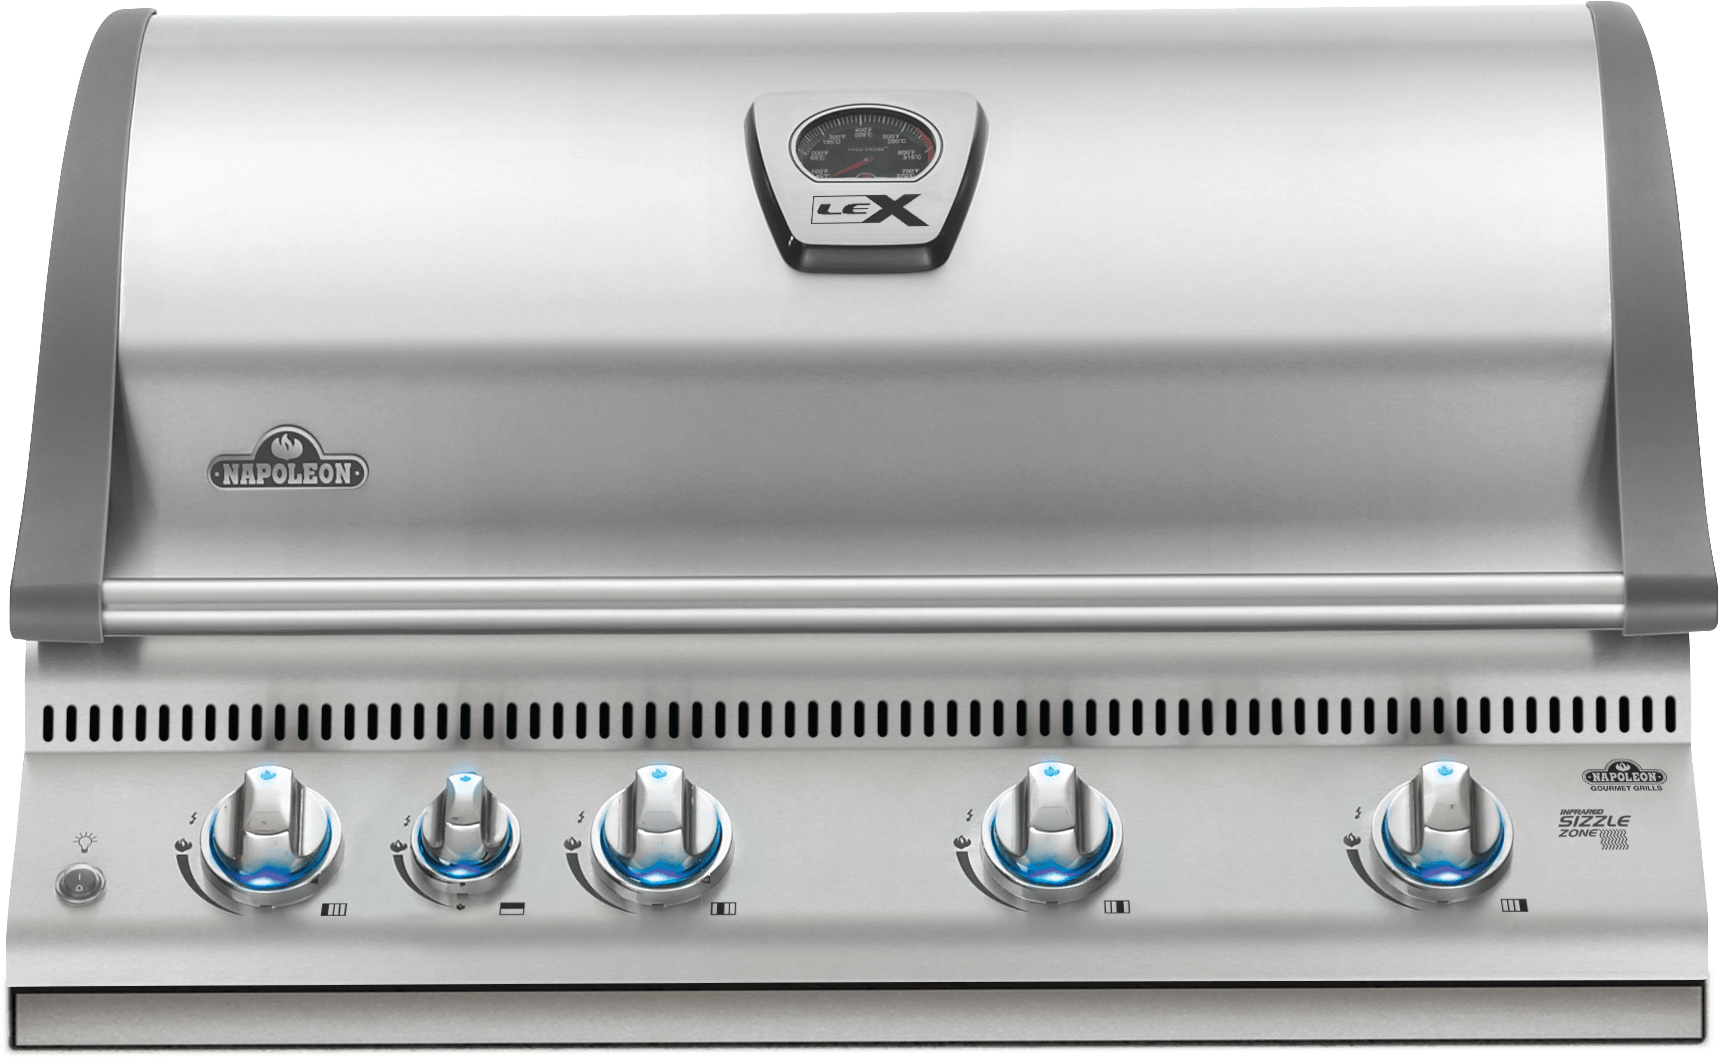 Built-in LEX 605 Propane Gas Grill Head with Infrared Bottom and Rear Burners, Stainless Steel